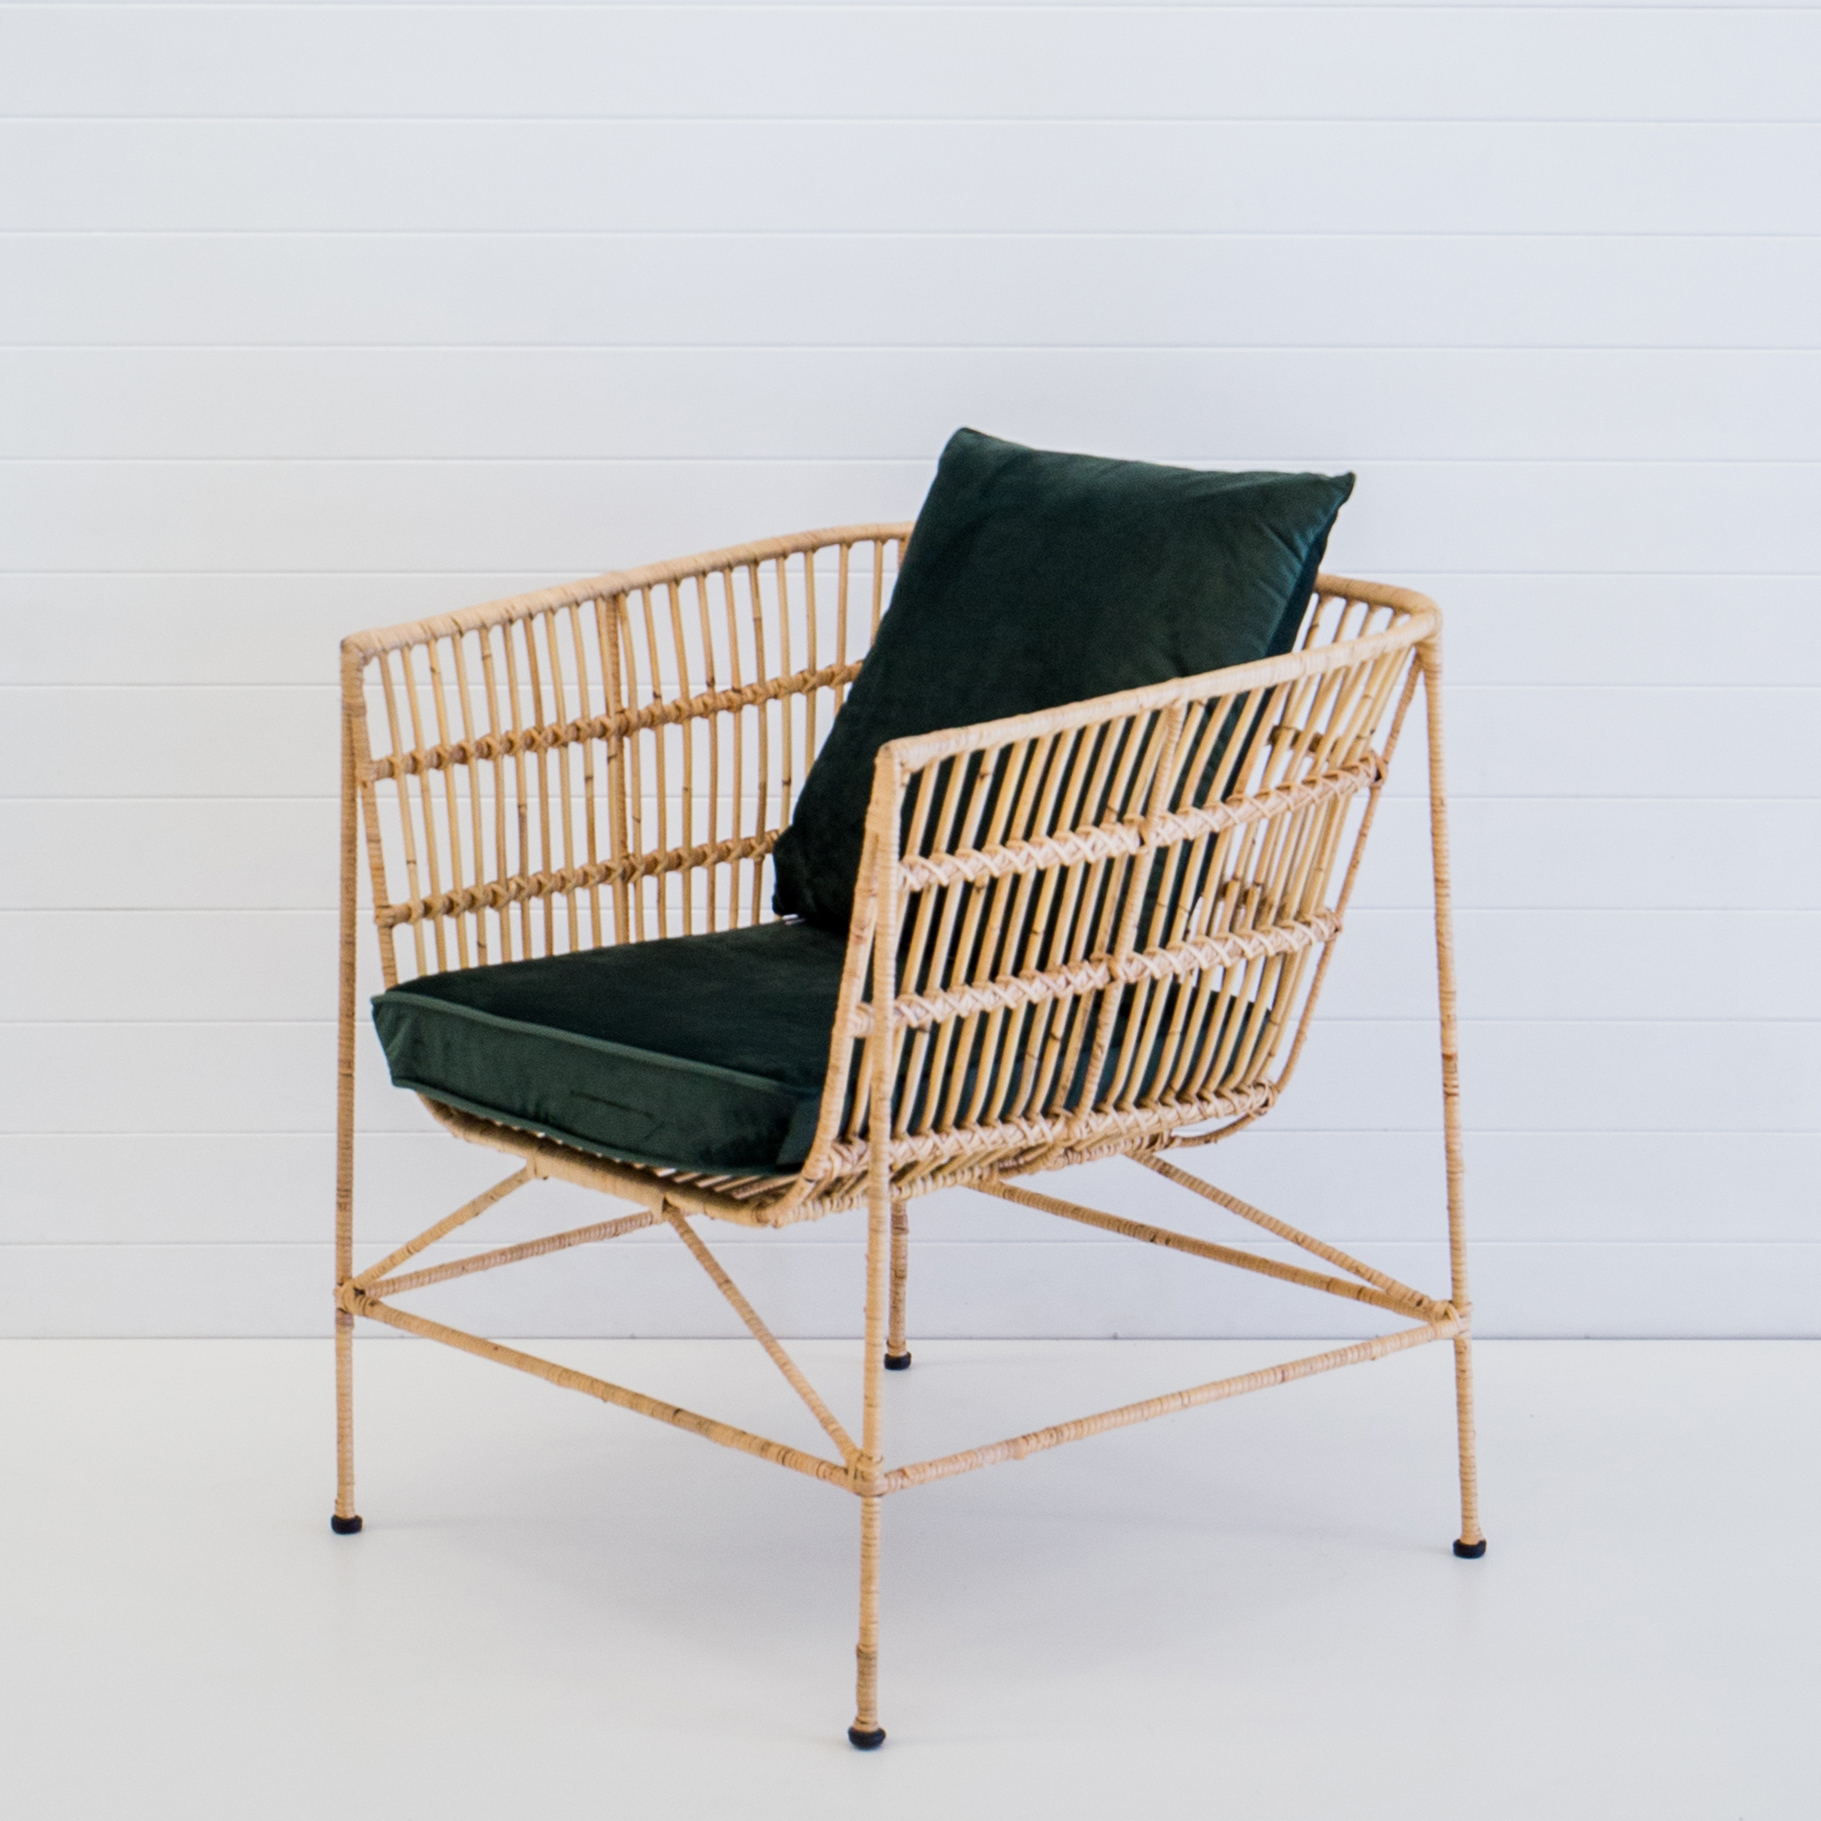 Indie natural armchair with emerald velvet cushion